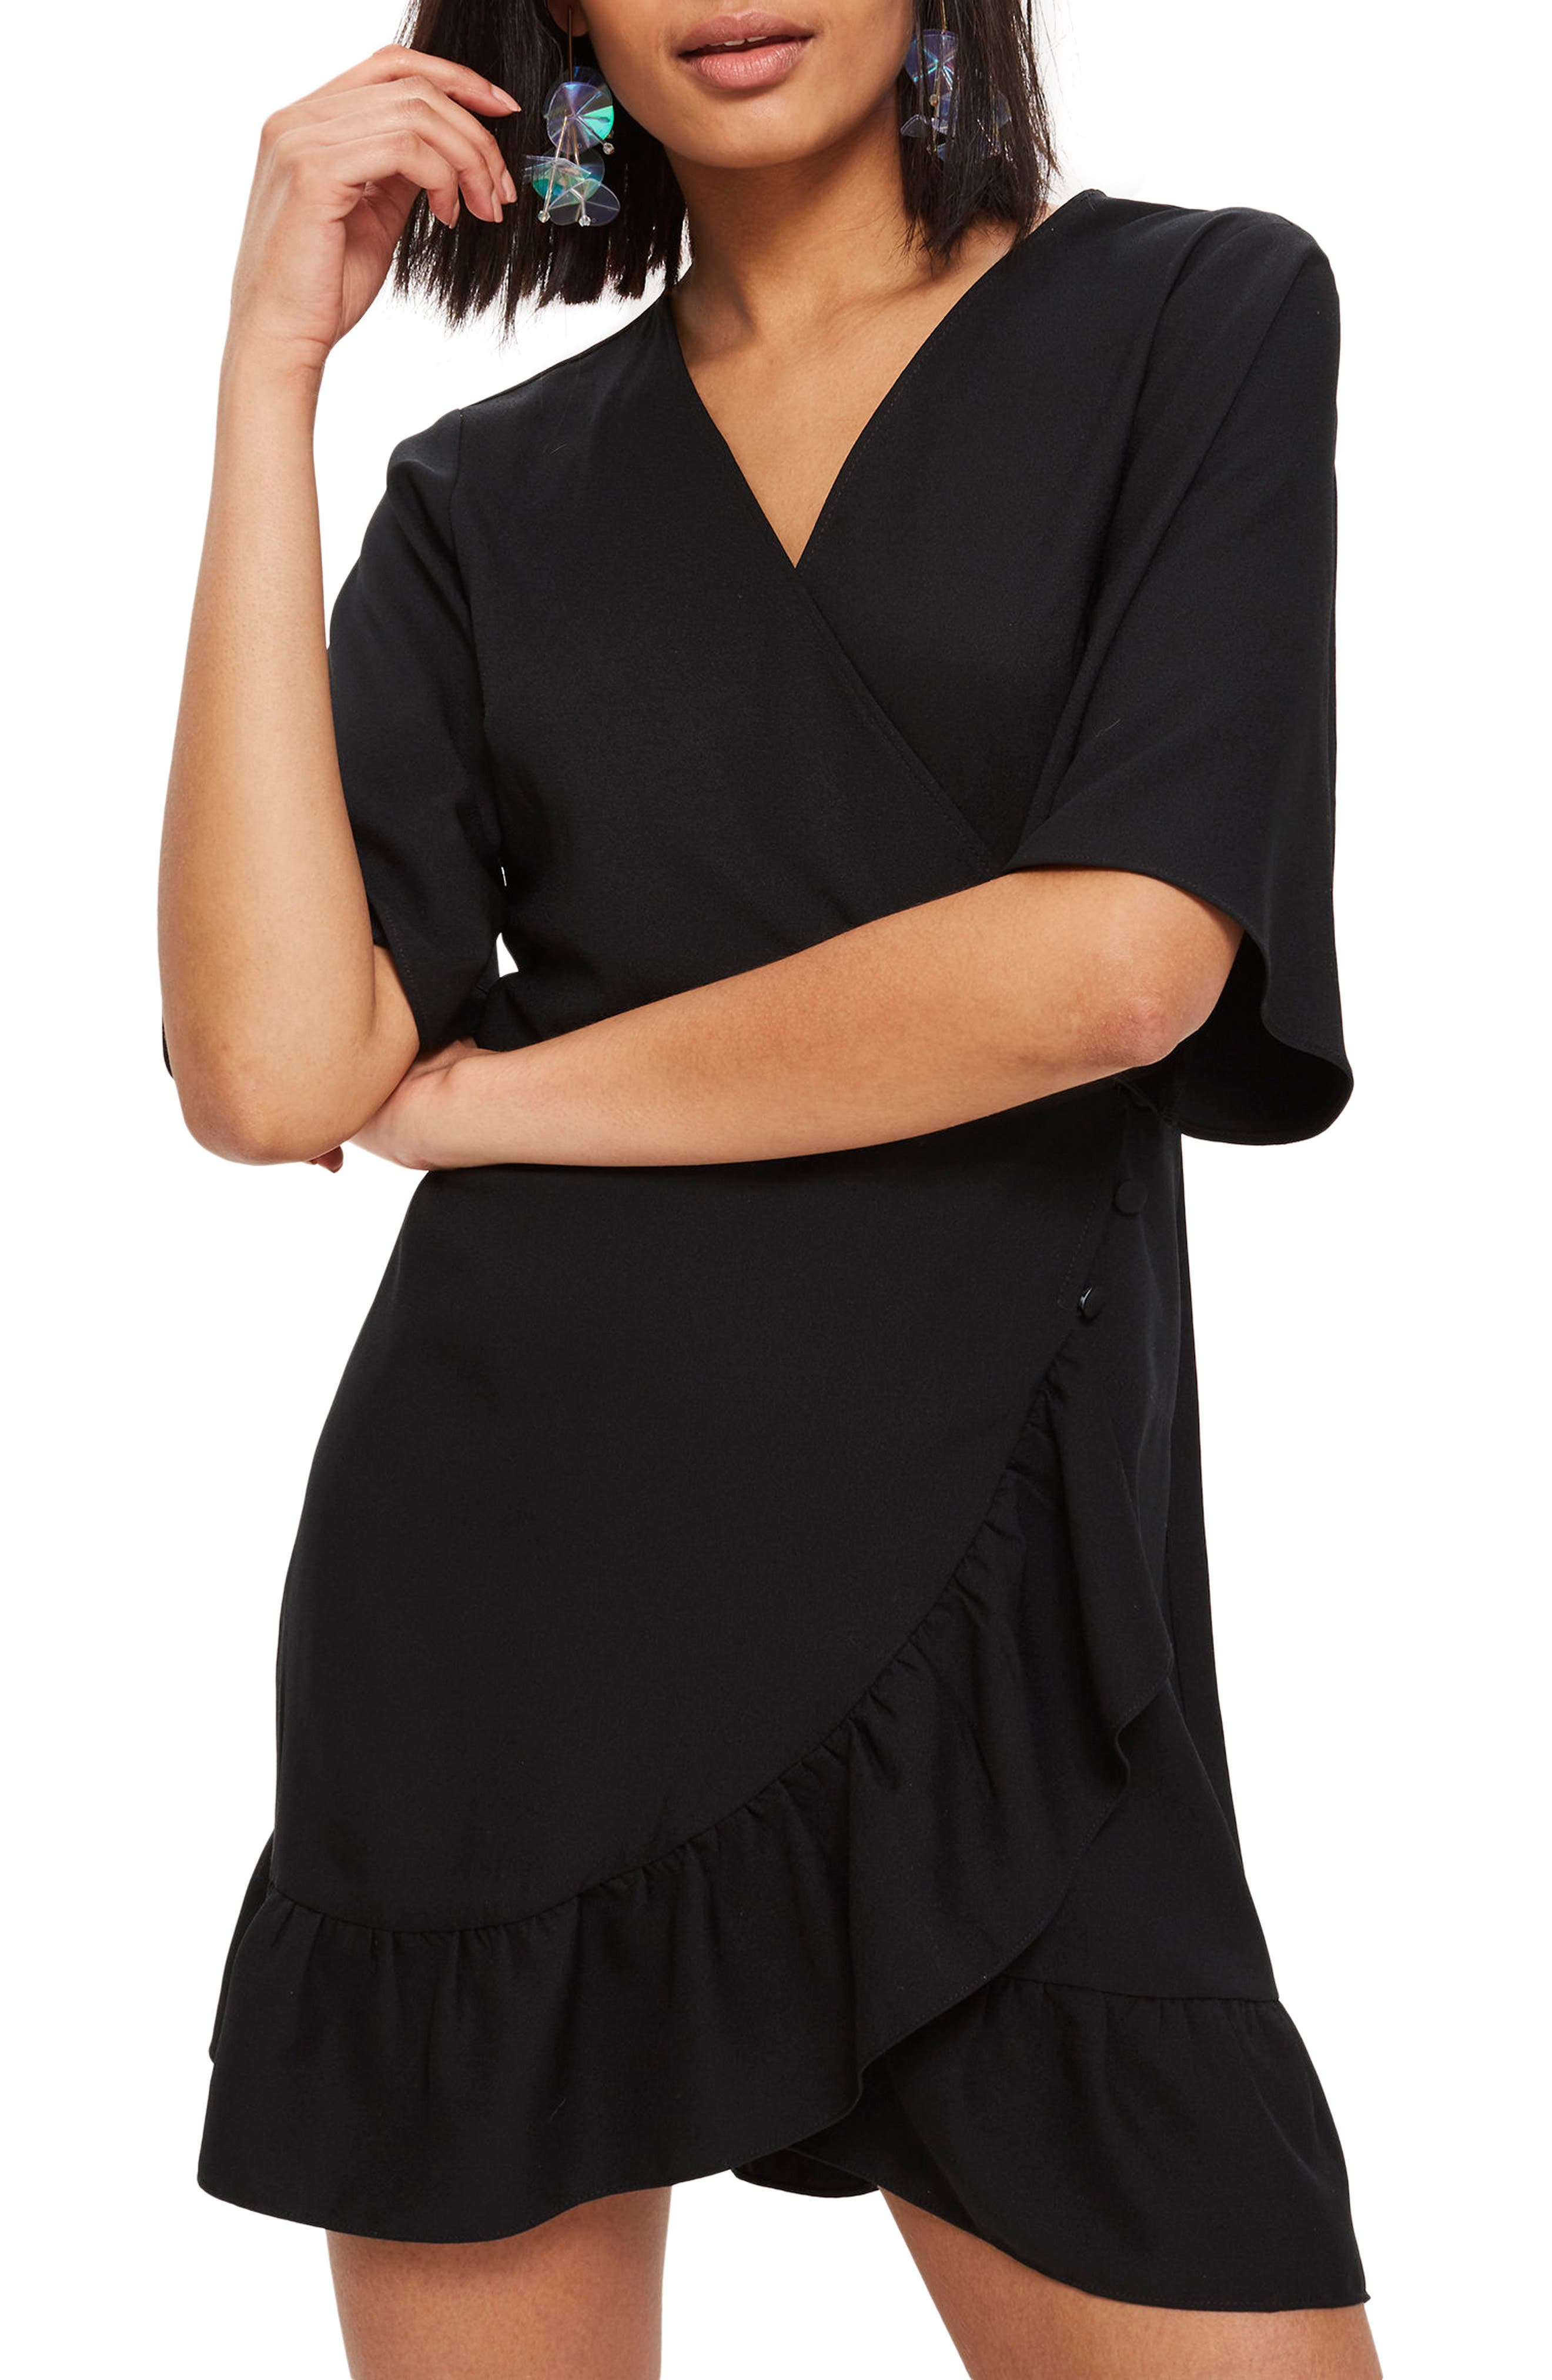 Ruffle Minidress,                             Main thumbnail 1, color,                             Black